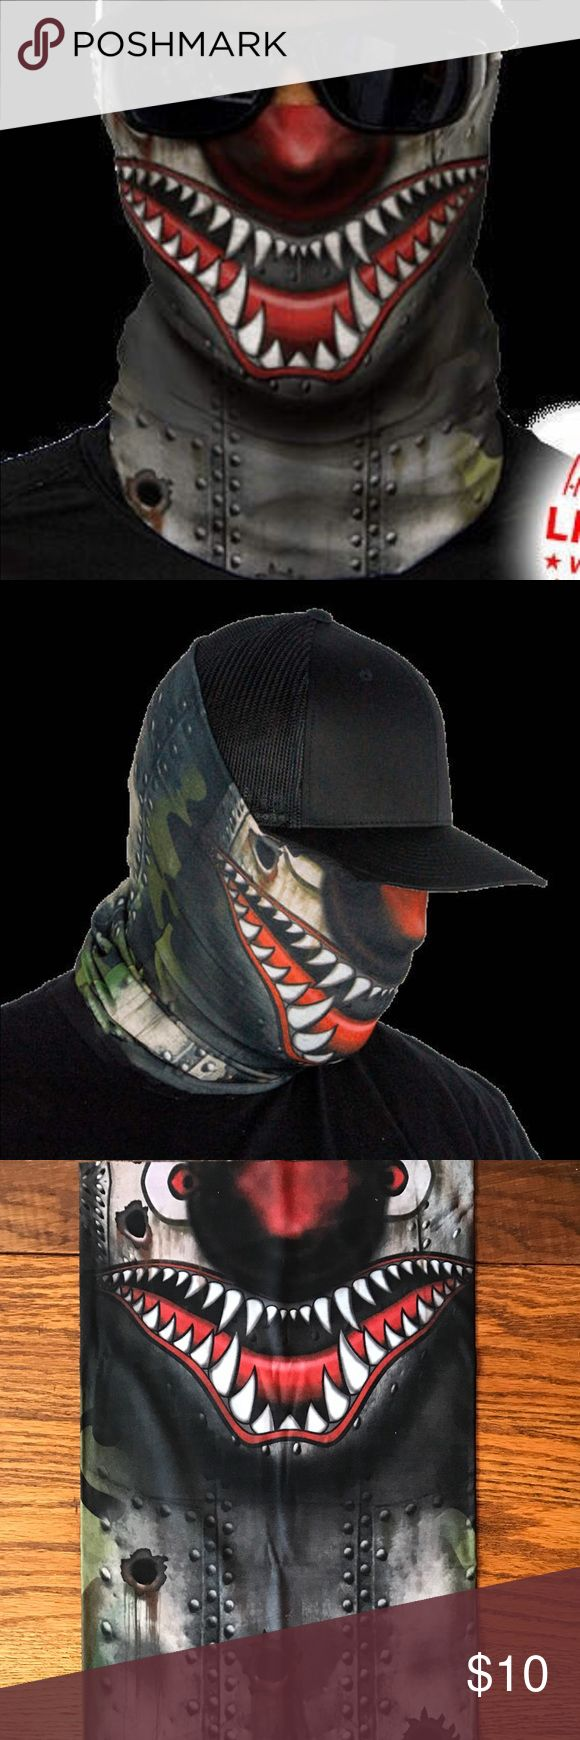 Salt Armour Tiger Shark Face Shield Sun Mask SA Co. Face Shield™ tubular bandanas offer style and sun protection without weighing you down.   PRODUCT SPECIFICATIONS: Soft, Breathable 100% Polyester Microfiber 100% Seamless 10+ Ways to Wear Repels Moisture SPF40 Stain Resistant Odor Control Protects Against Wind Helps Maintain Hydration Quick-Drying 2-Way Lateral Stretch Product Dimensions: (approx.) 10.5 x 20.5 inches Weight: 1.3 ounces One Size Fits All Adults Machine Washable Air Dry Do…